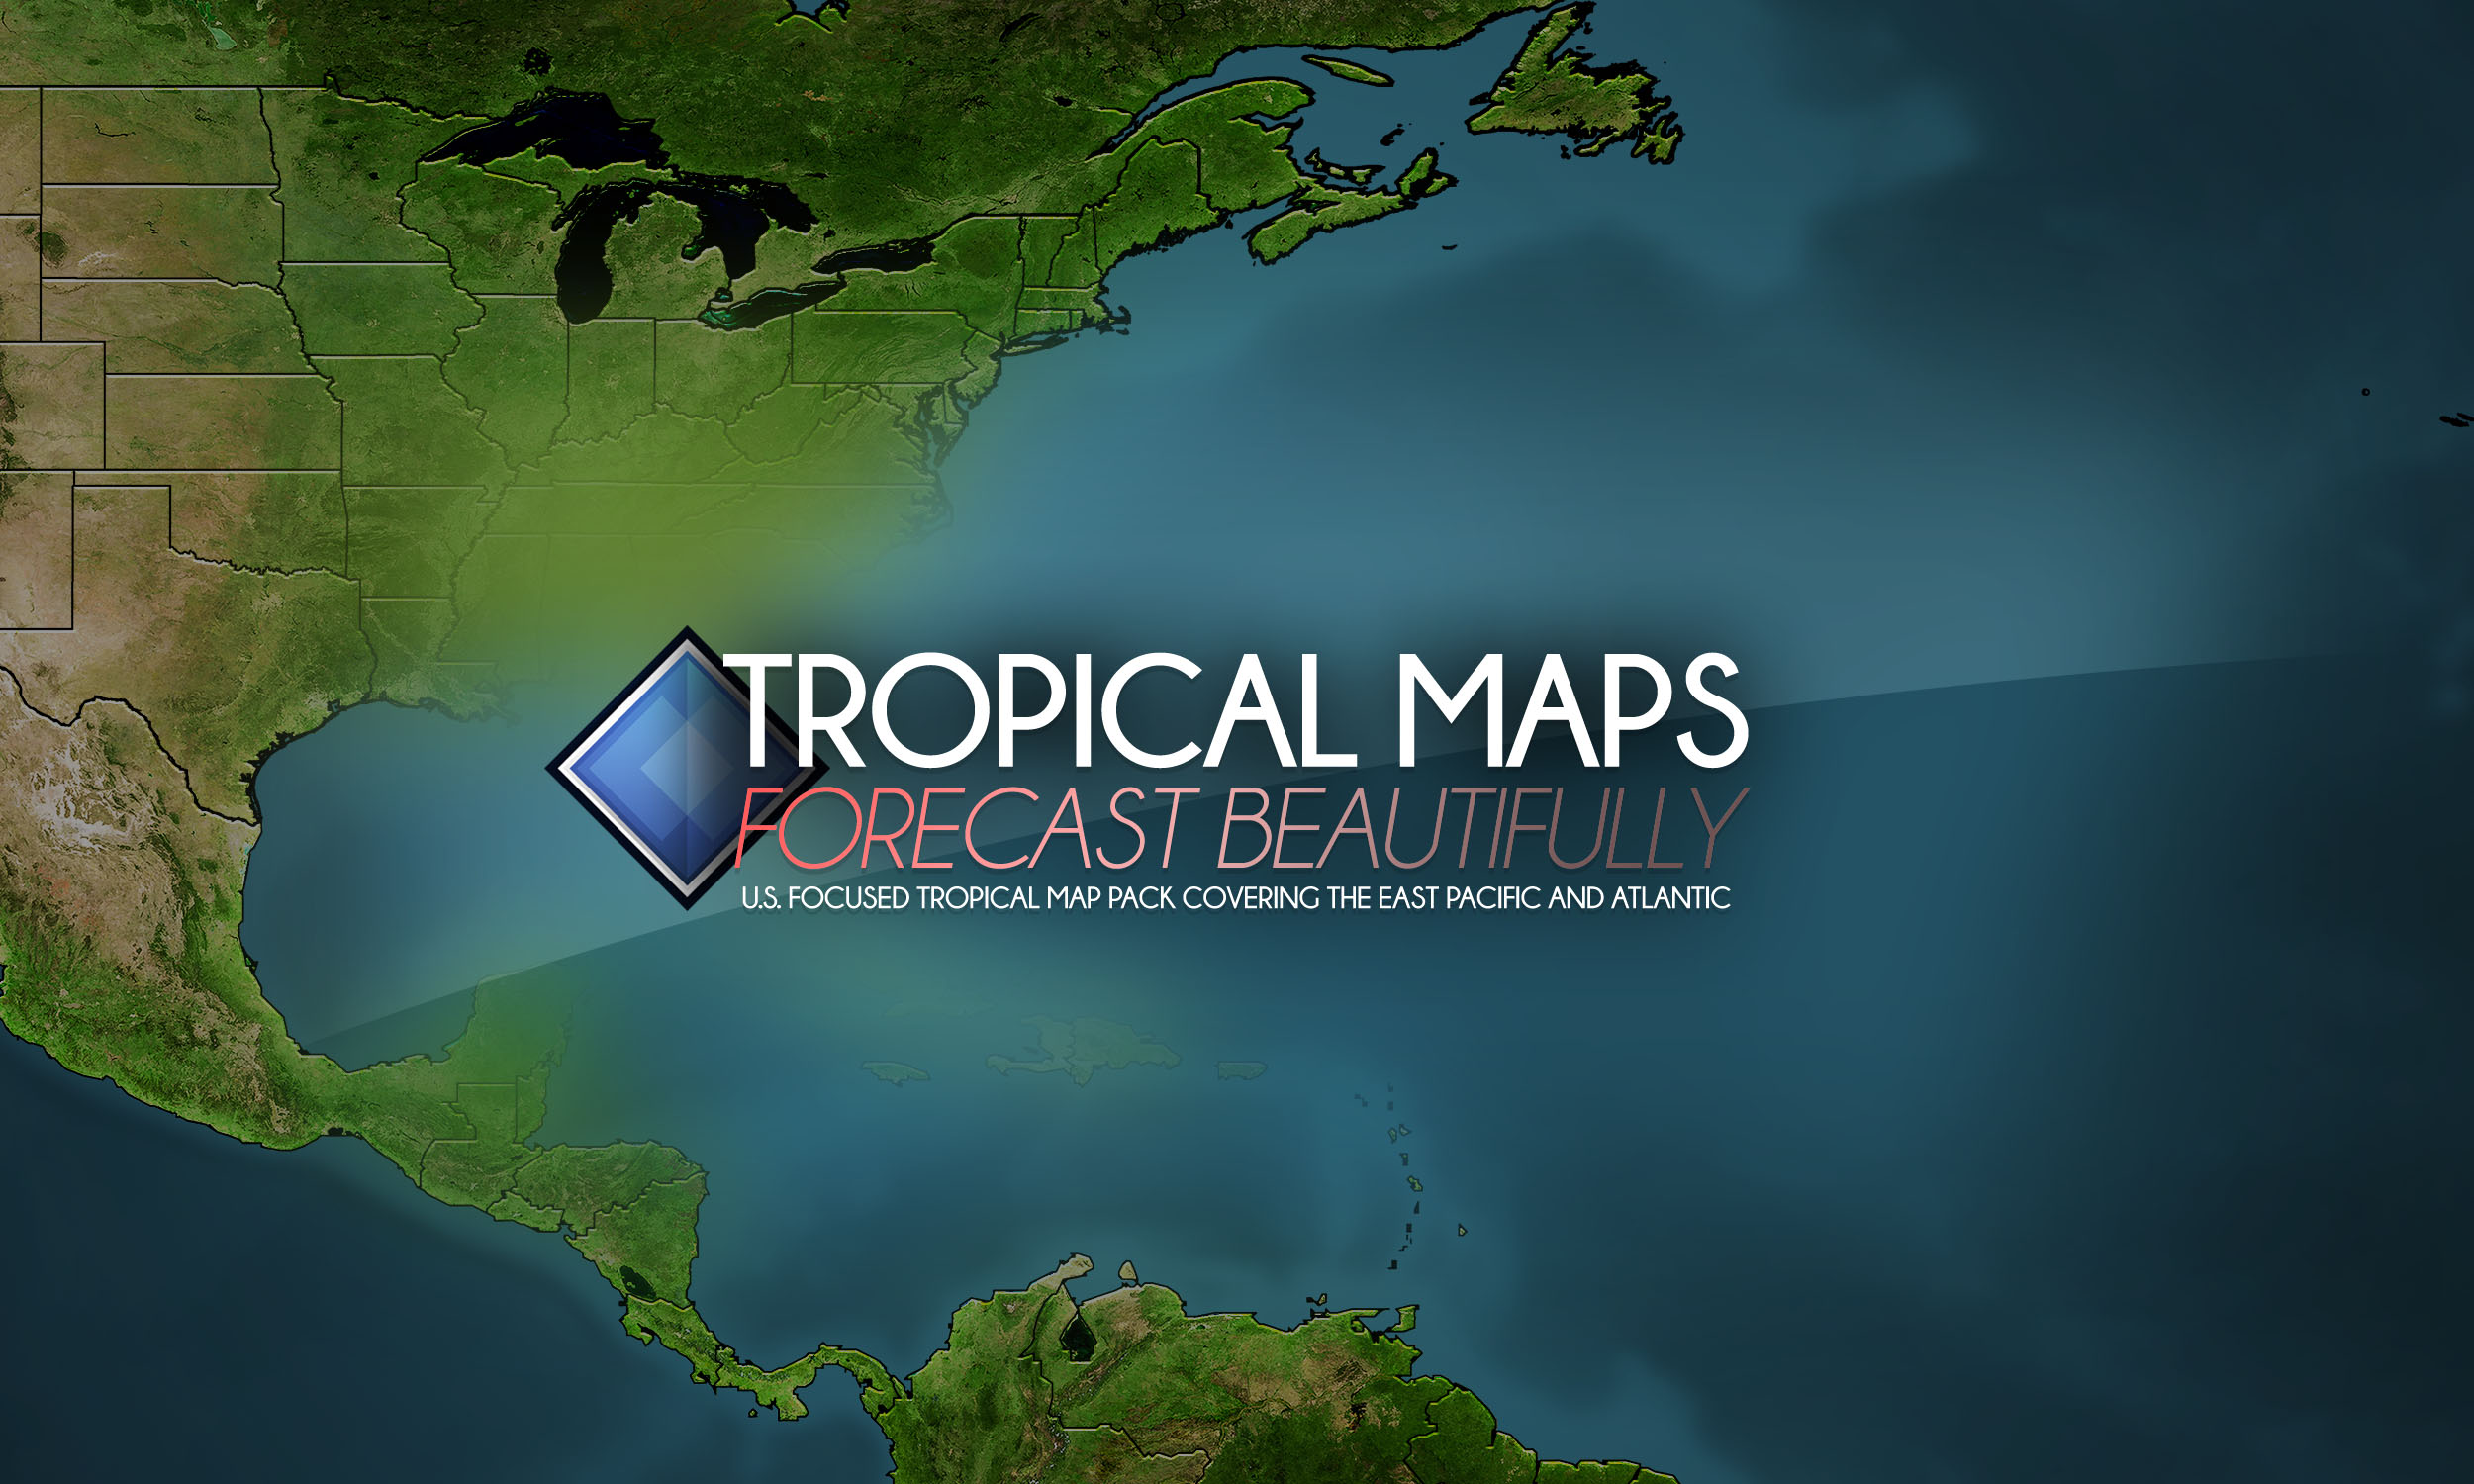 Tropical Maps